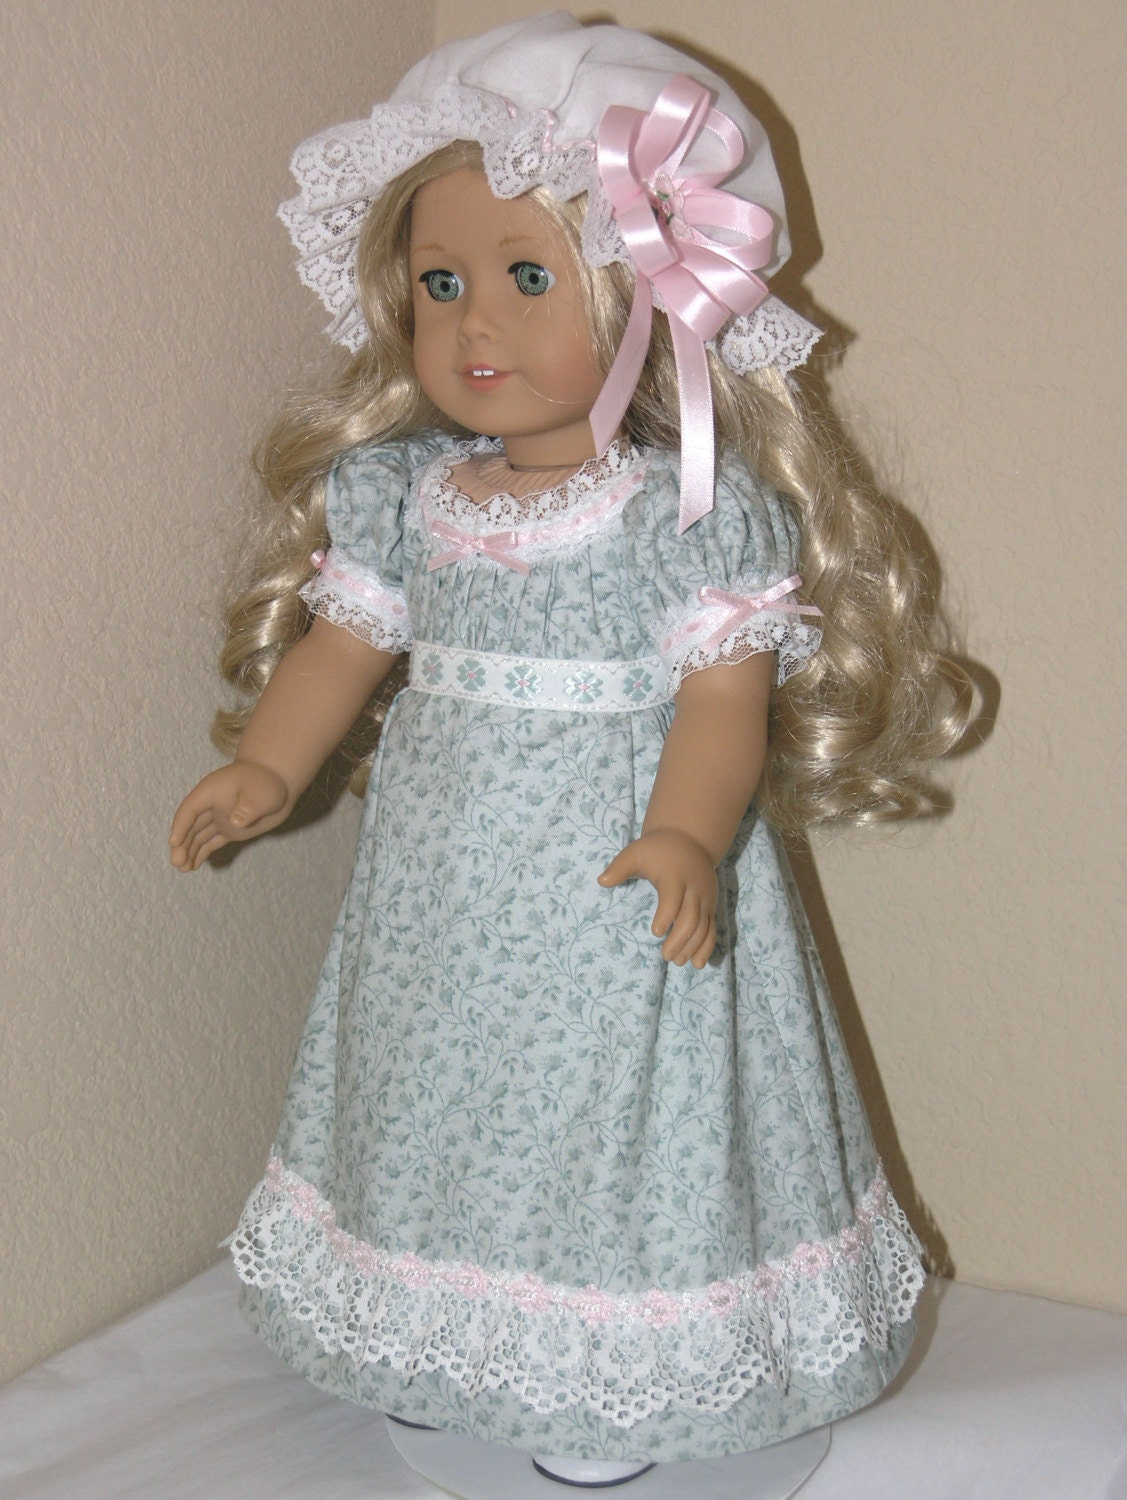 18 inch american girl doll clothes caroline 1850s dress for Garden tools for 18 inch doll